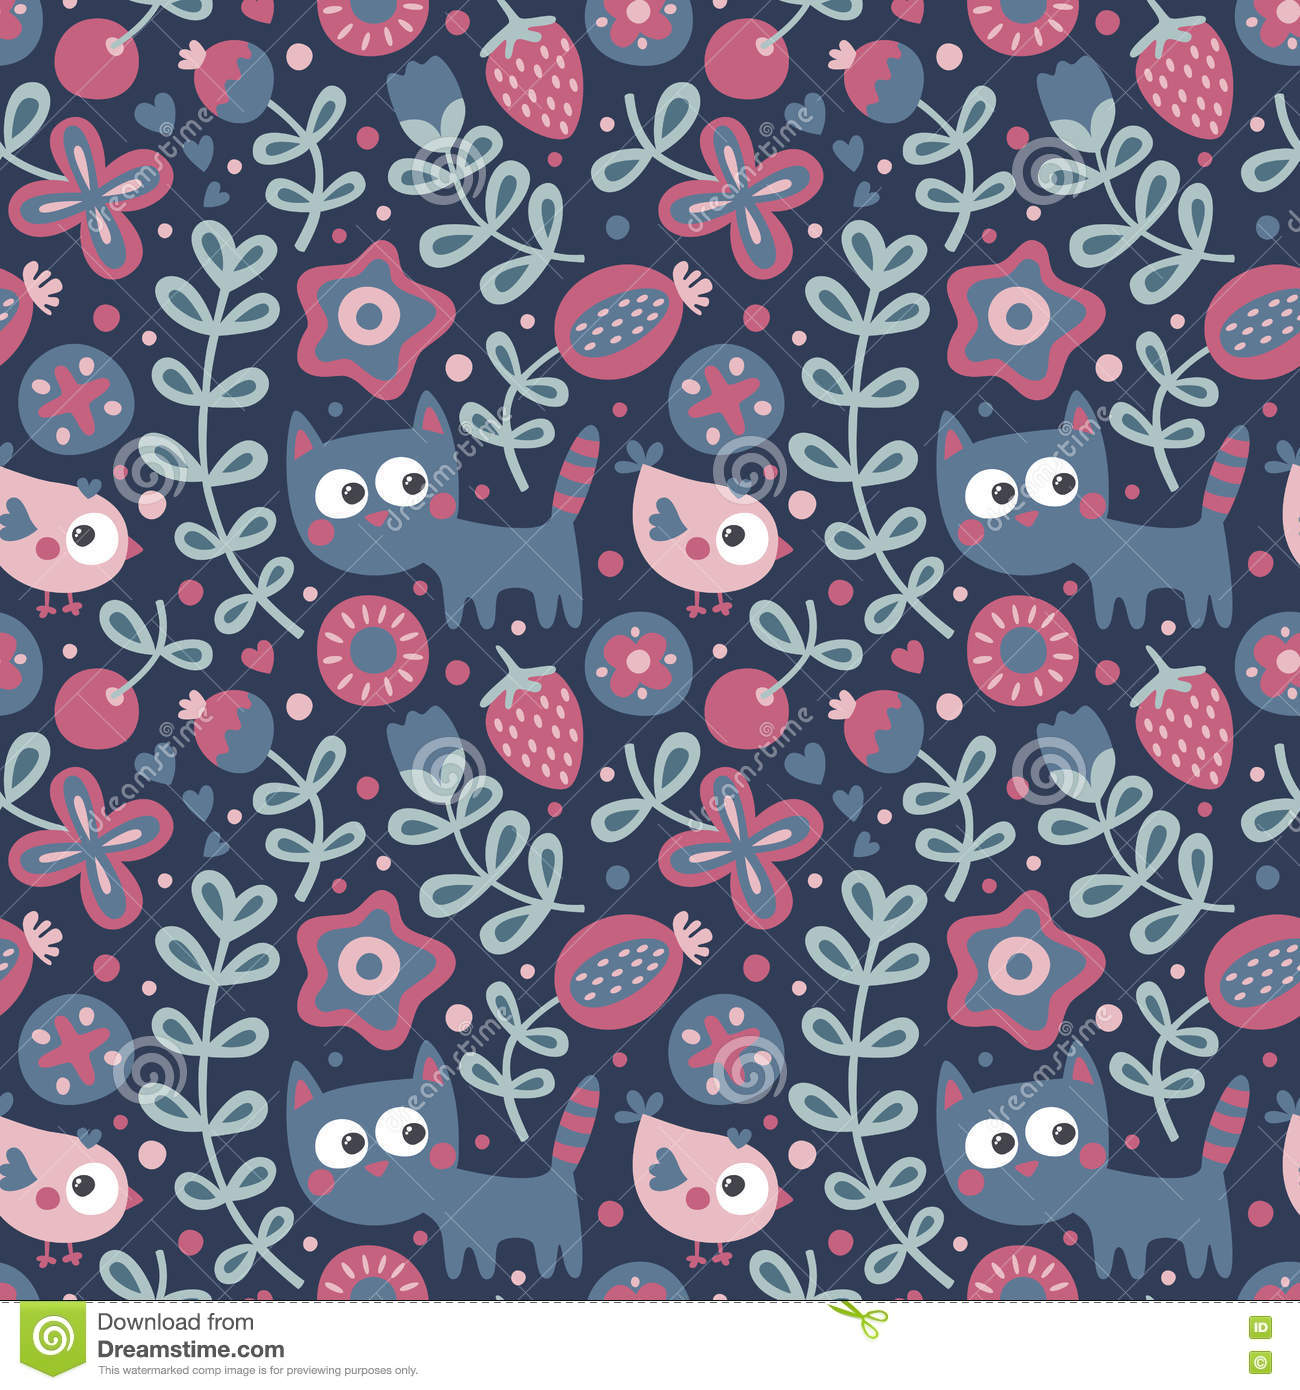 Seamless Cute Floral And Animal Pattern With Cat Bird Flowers Plants Leaf Berry Funny Collection Design